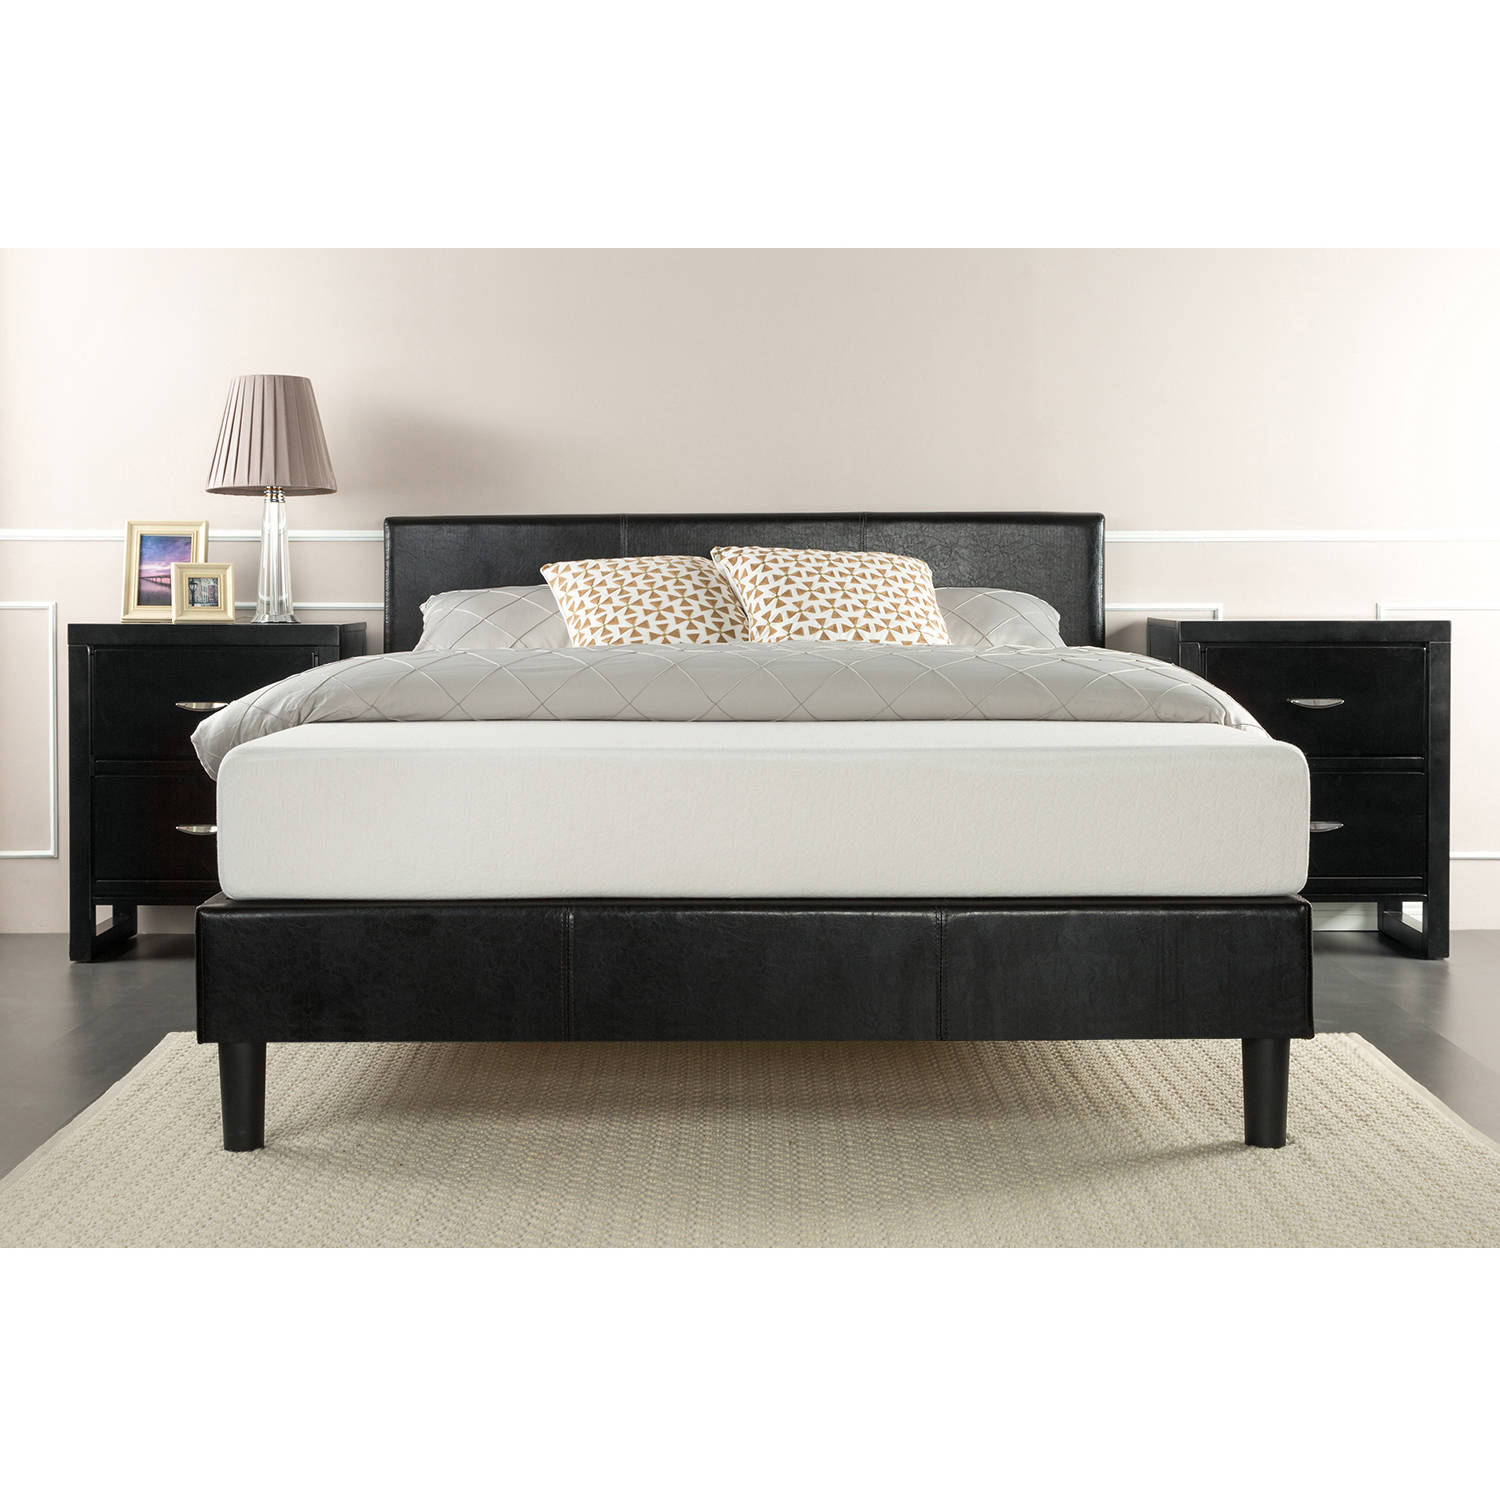 Zinus Faux Leather Platform Bed with Wood Slat Support, Black